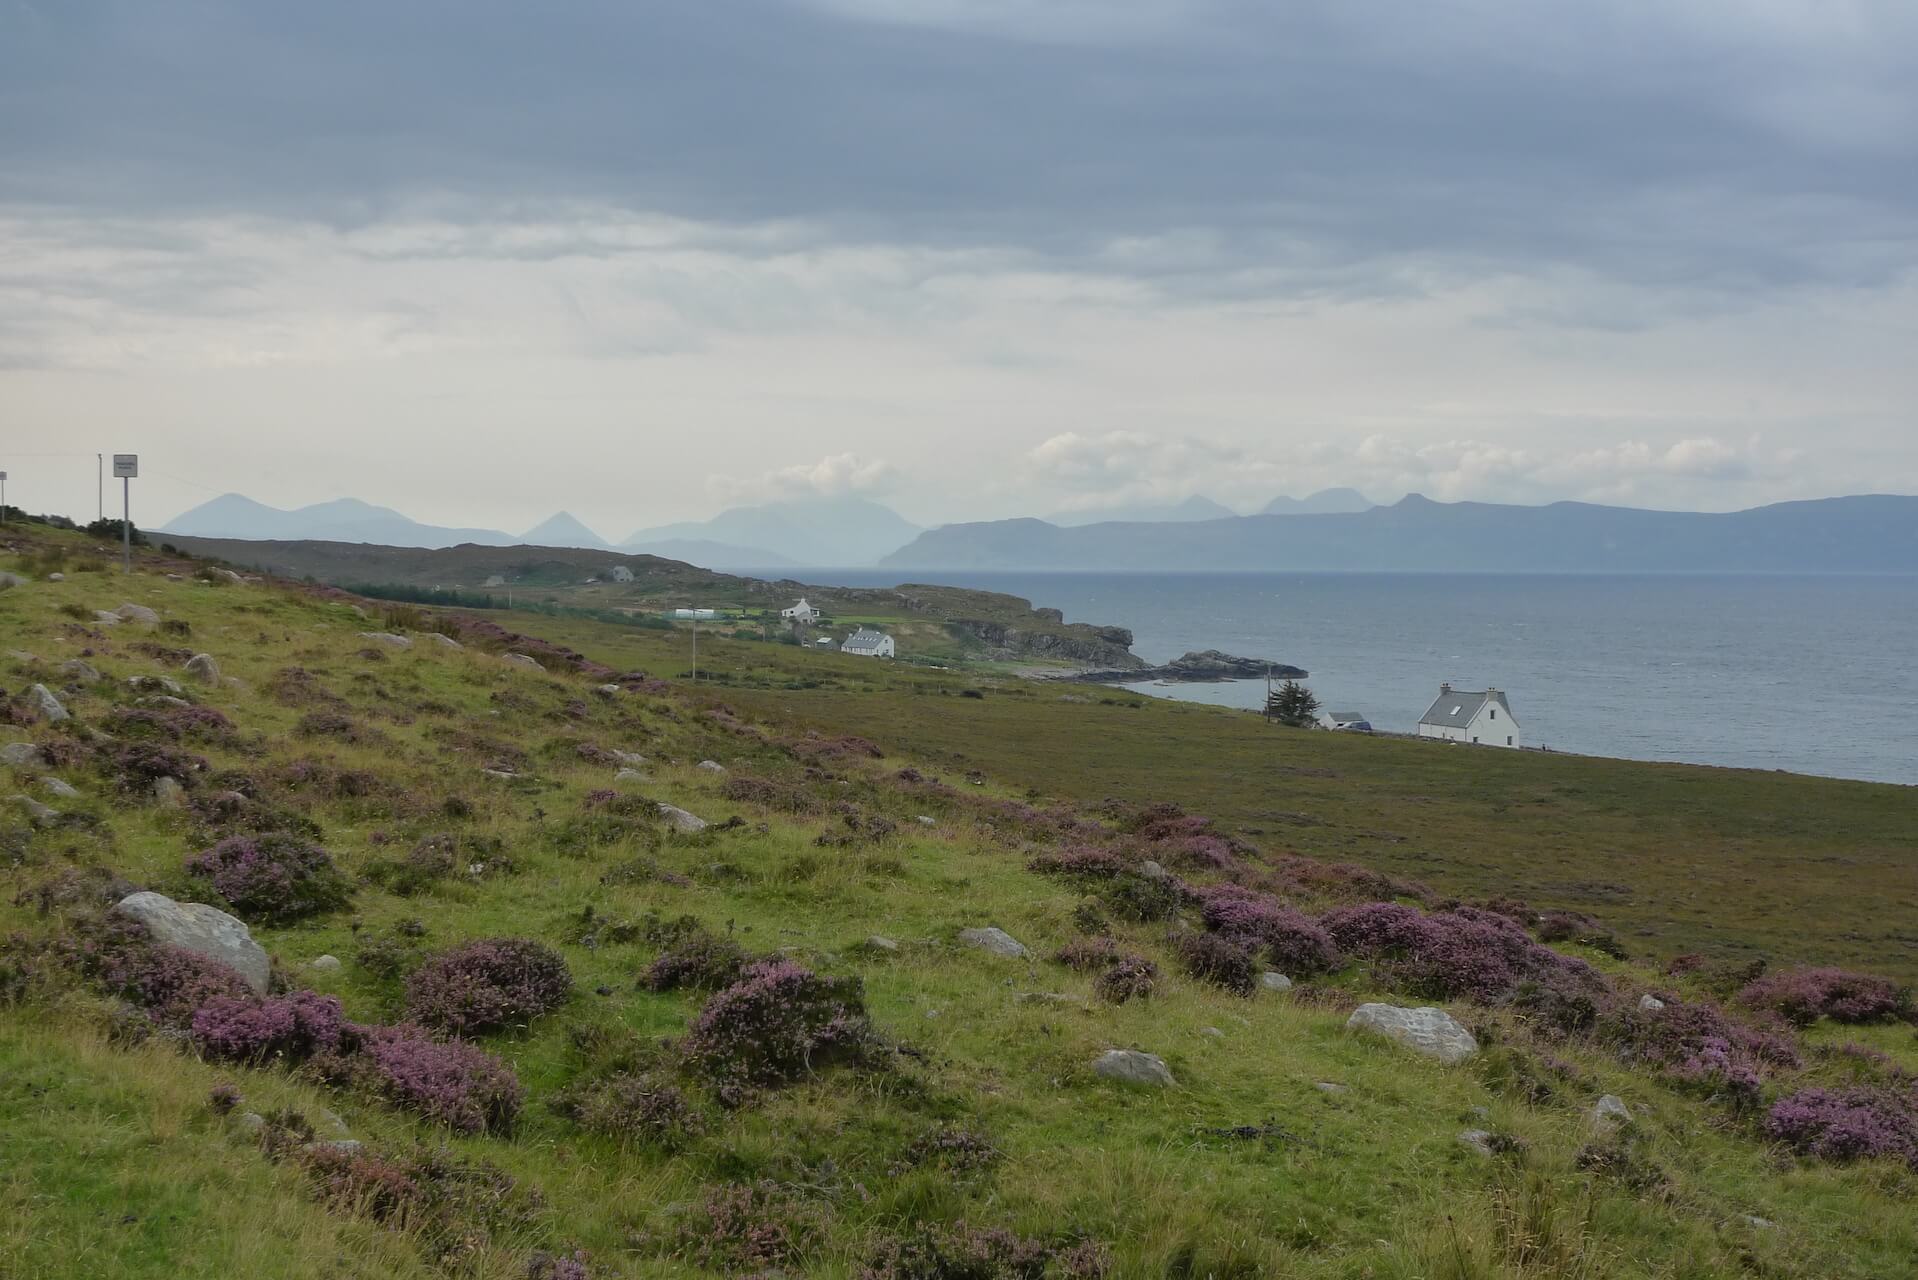 View over the sea to Skye from Applecross